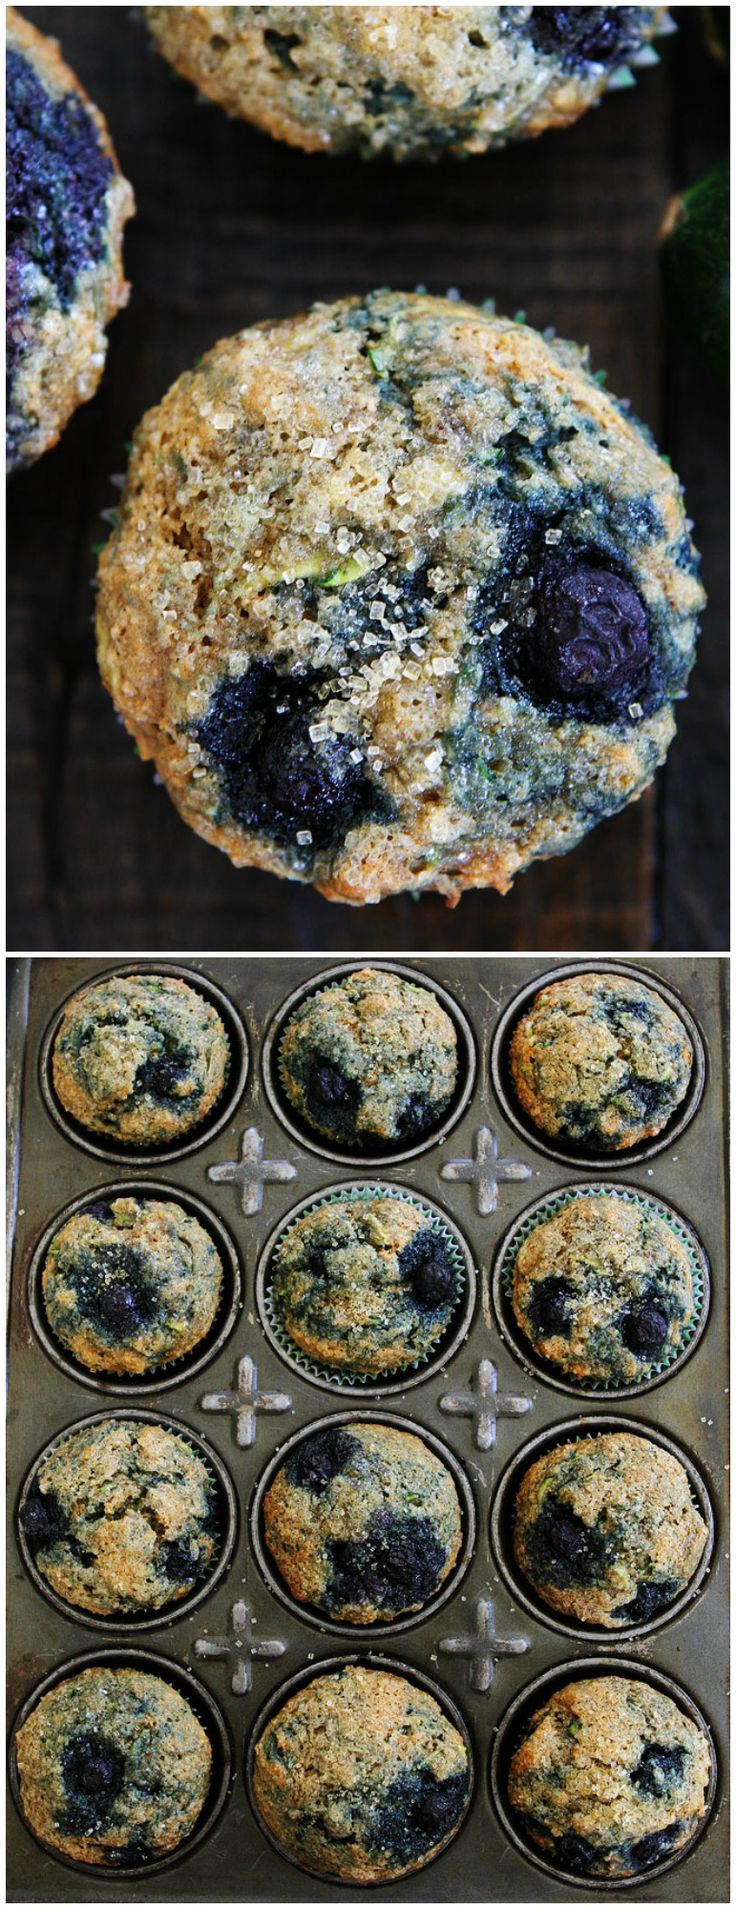 Zucchini Banana Blueberry Muffins on twopeasandtheirpod.com These delicious and healthy muffins are made with zucchini, banana, and blueberries! Kids and adults love them!